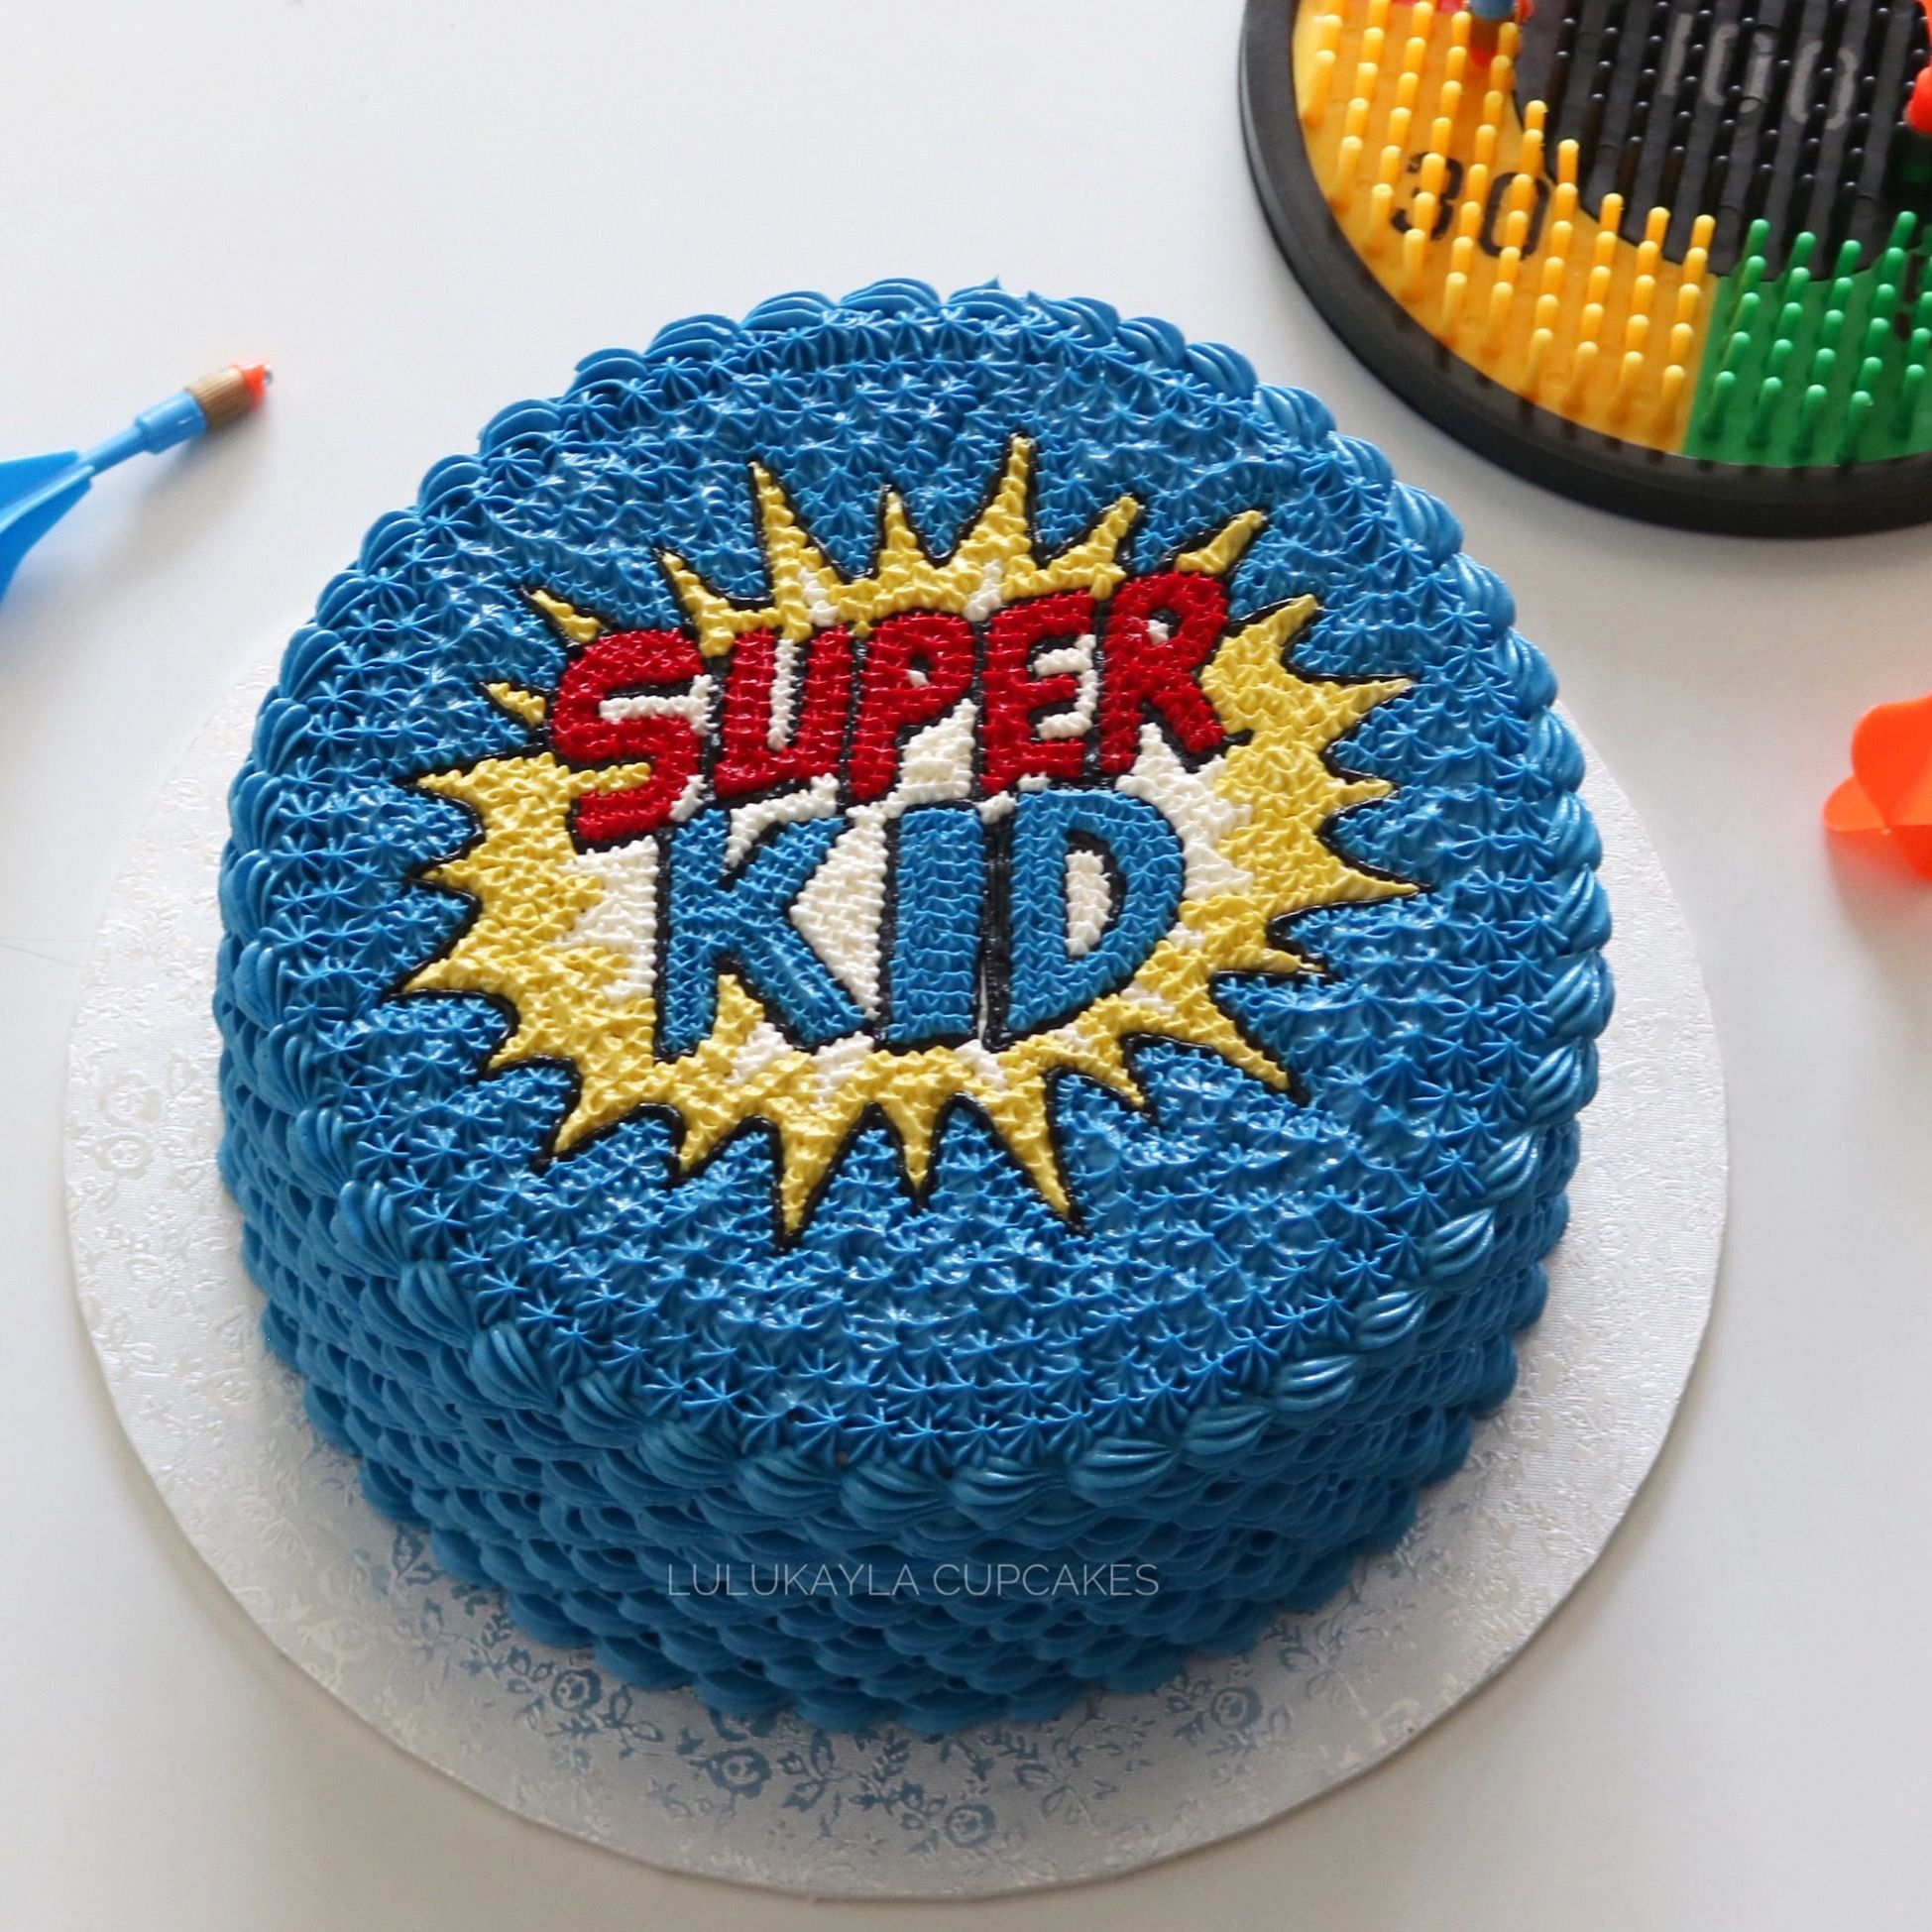 Super Kid Cake Cake Designs For Boy Butter Icing Cake Designs Buttercream Cake Designs